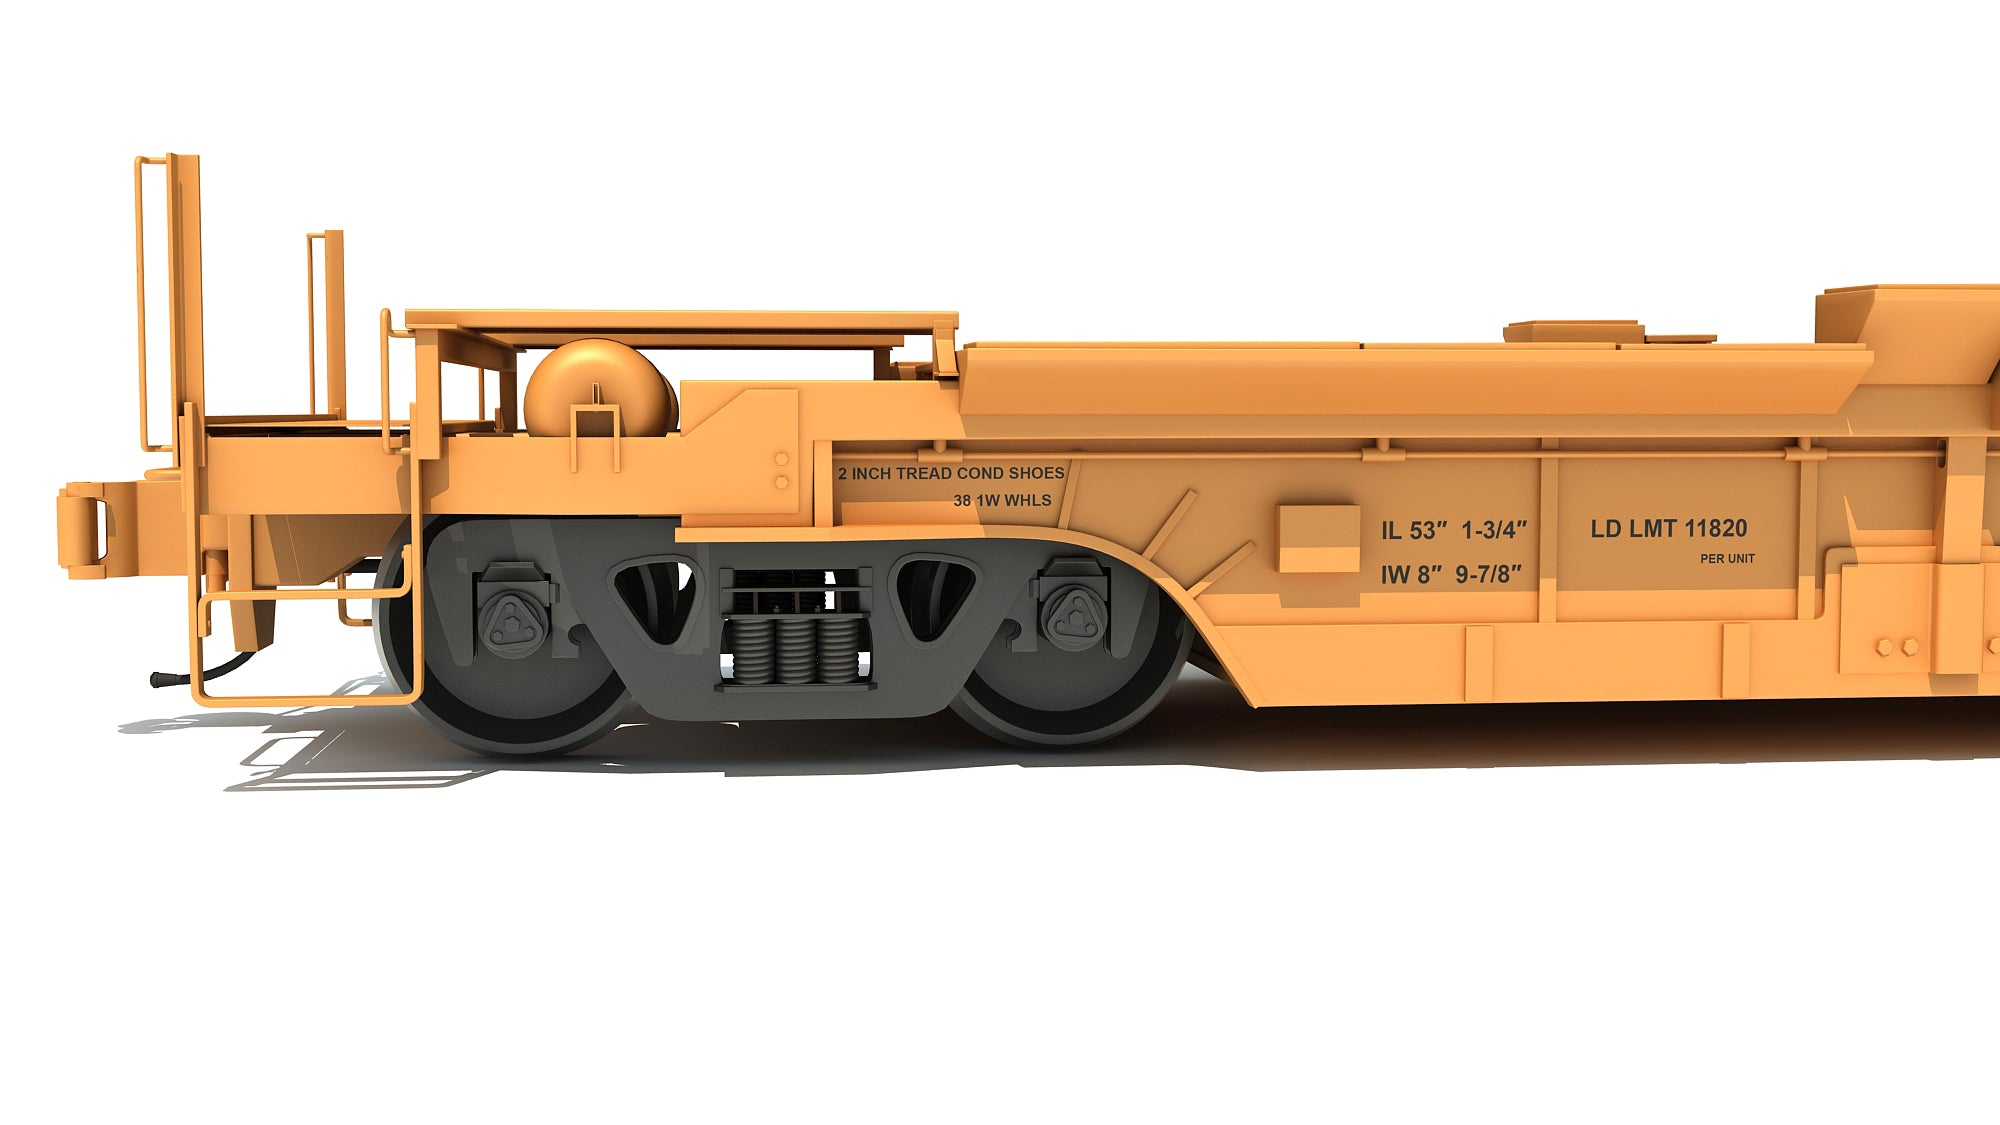 Double Stack Railcar